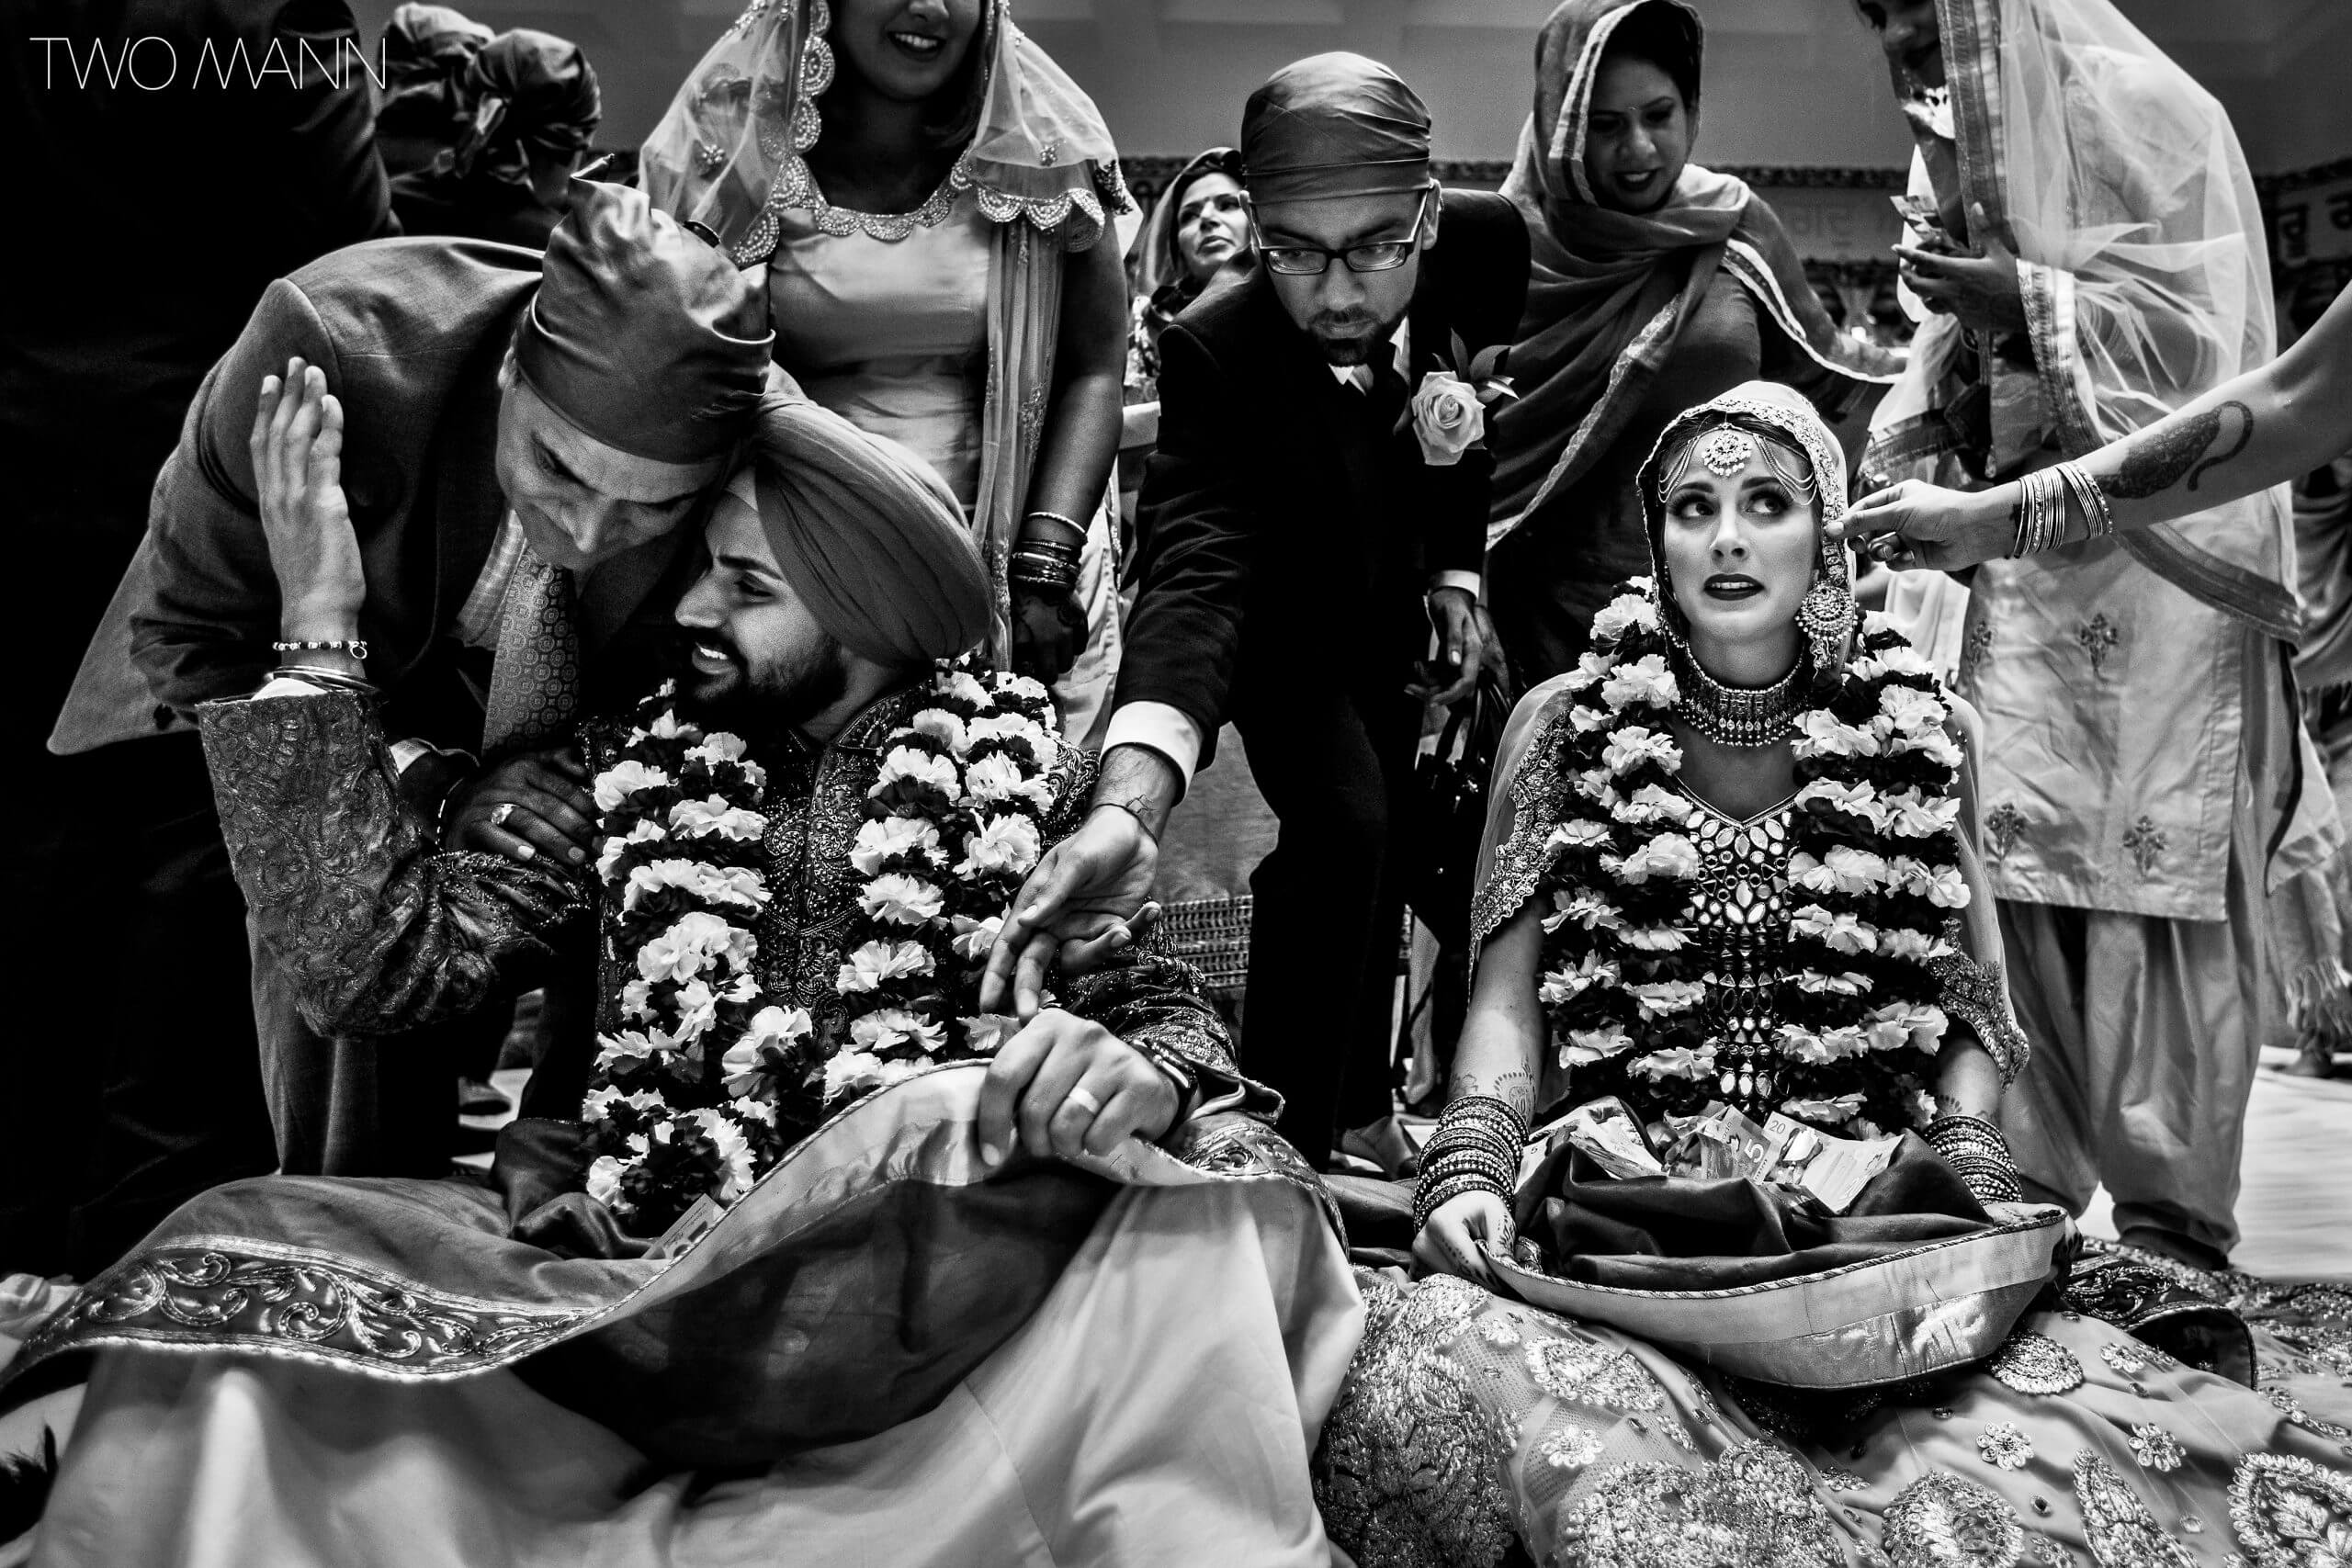 a glance at an Indian Sikh wedding ceremony